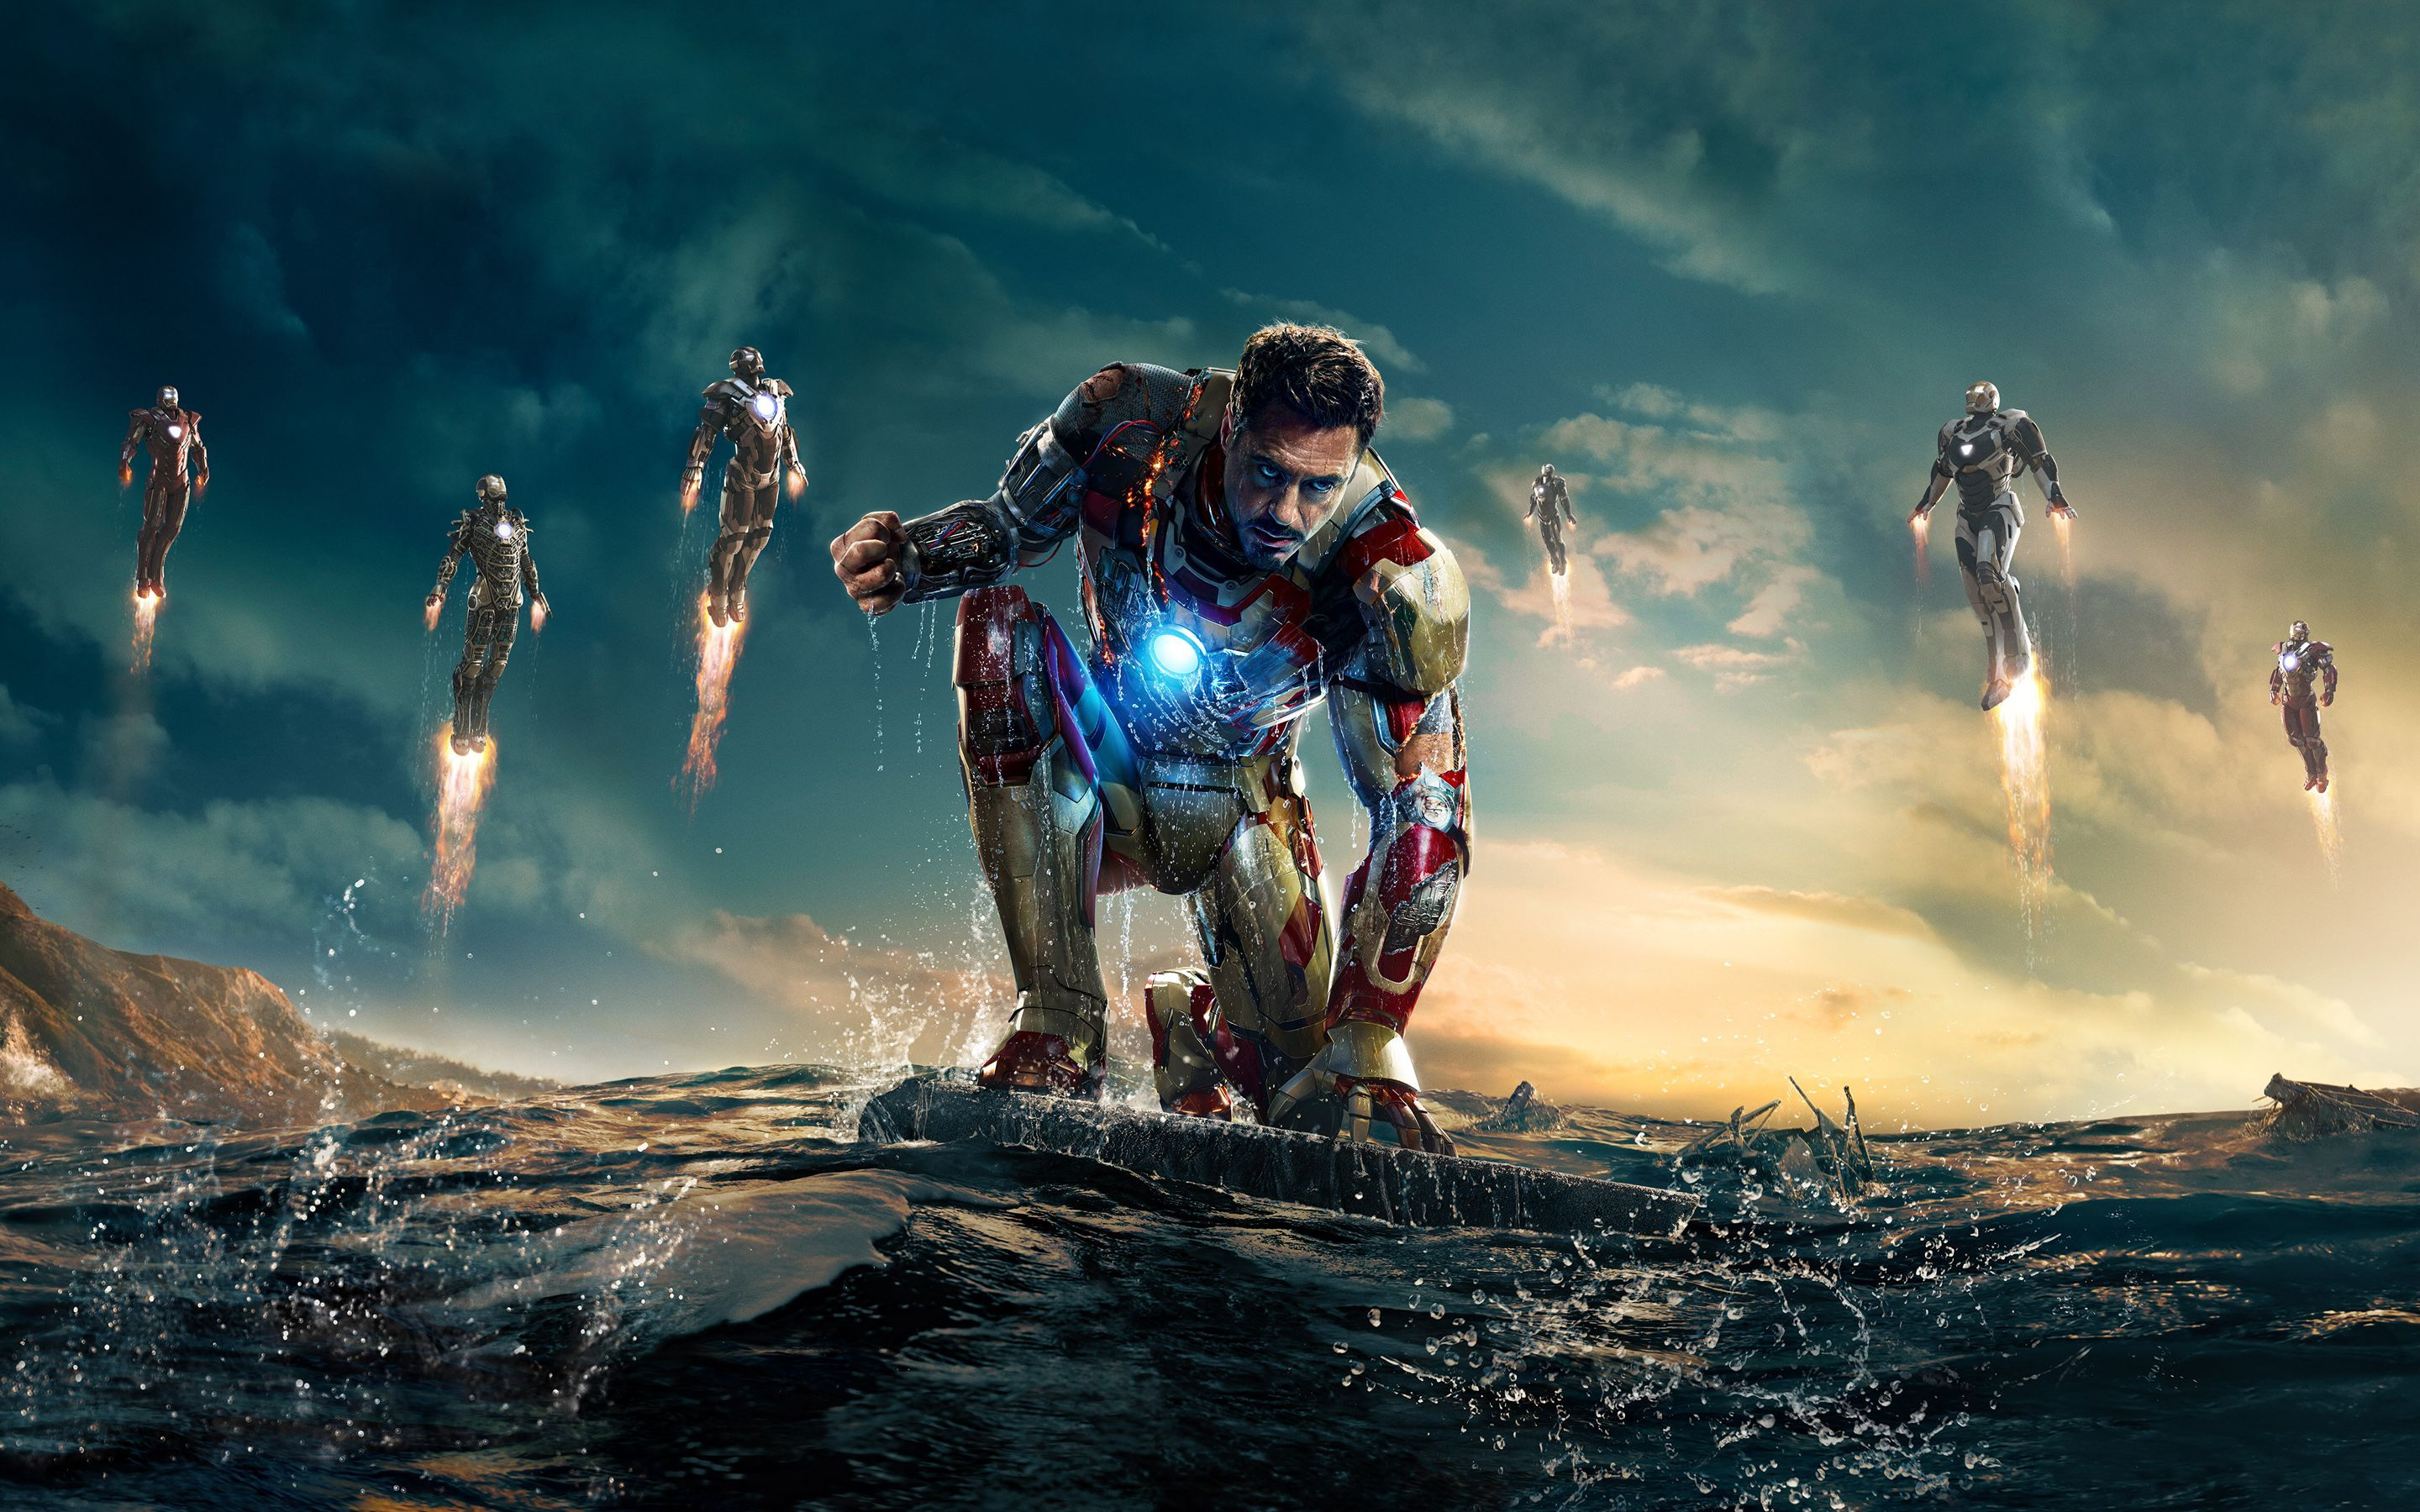 Cool Iron Man 3 Wallpapers Top Free Cool Iron Man 3 Backgrounds Wallpaperaccess